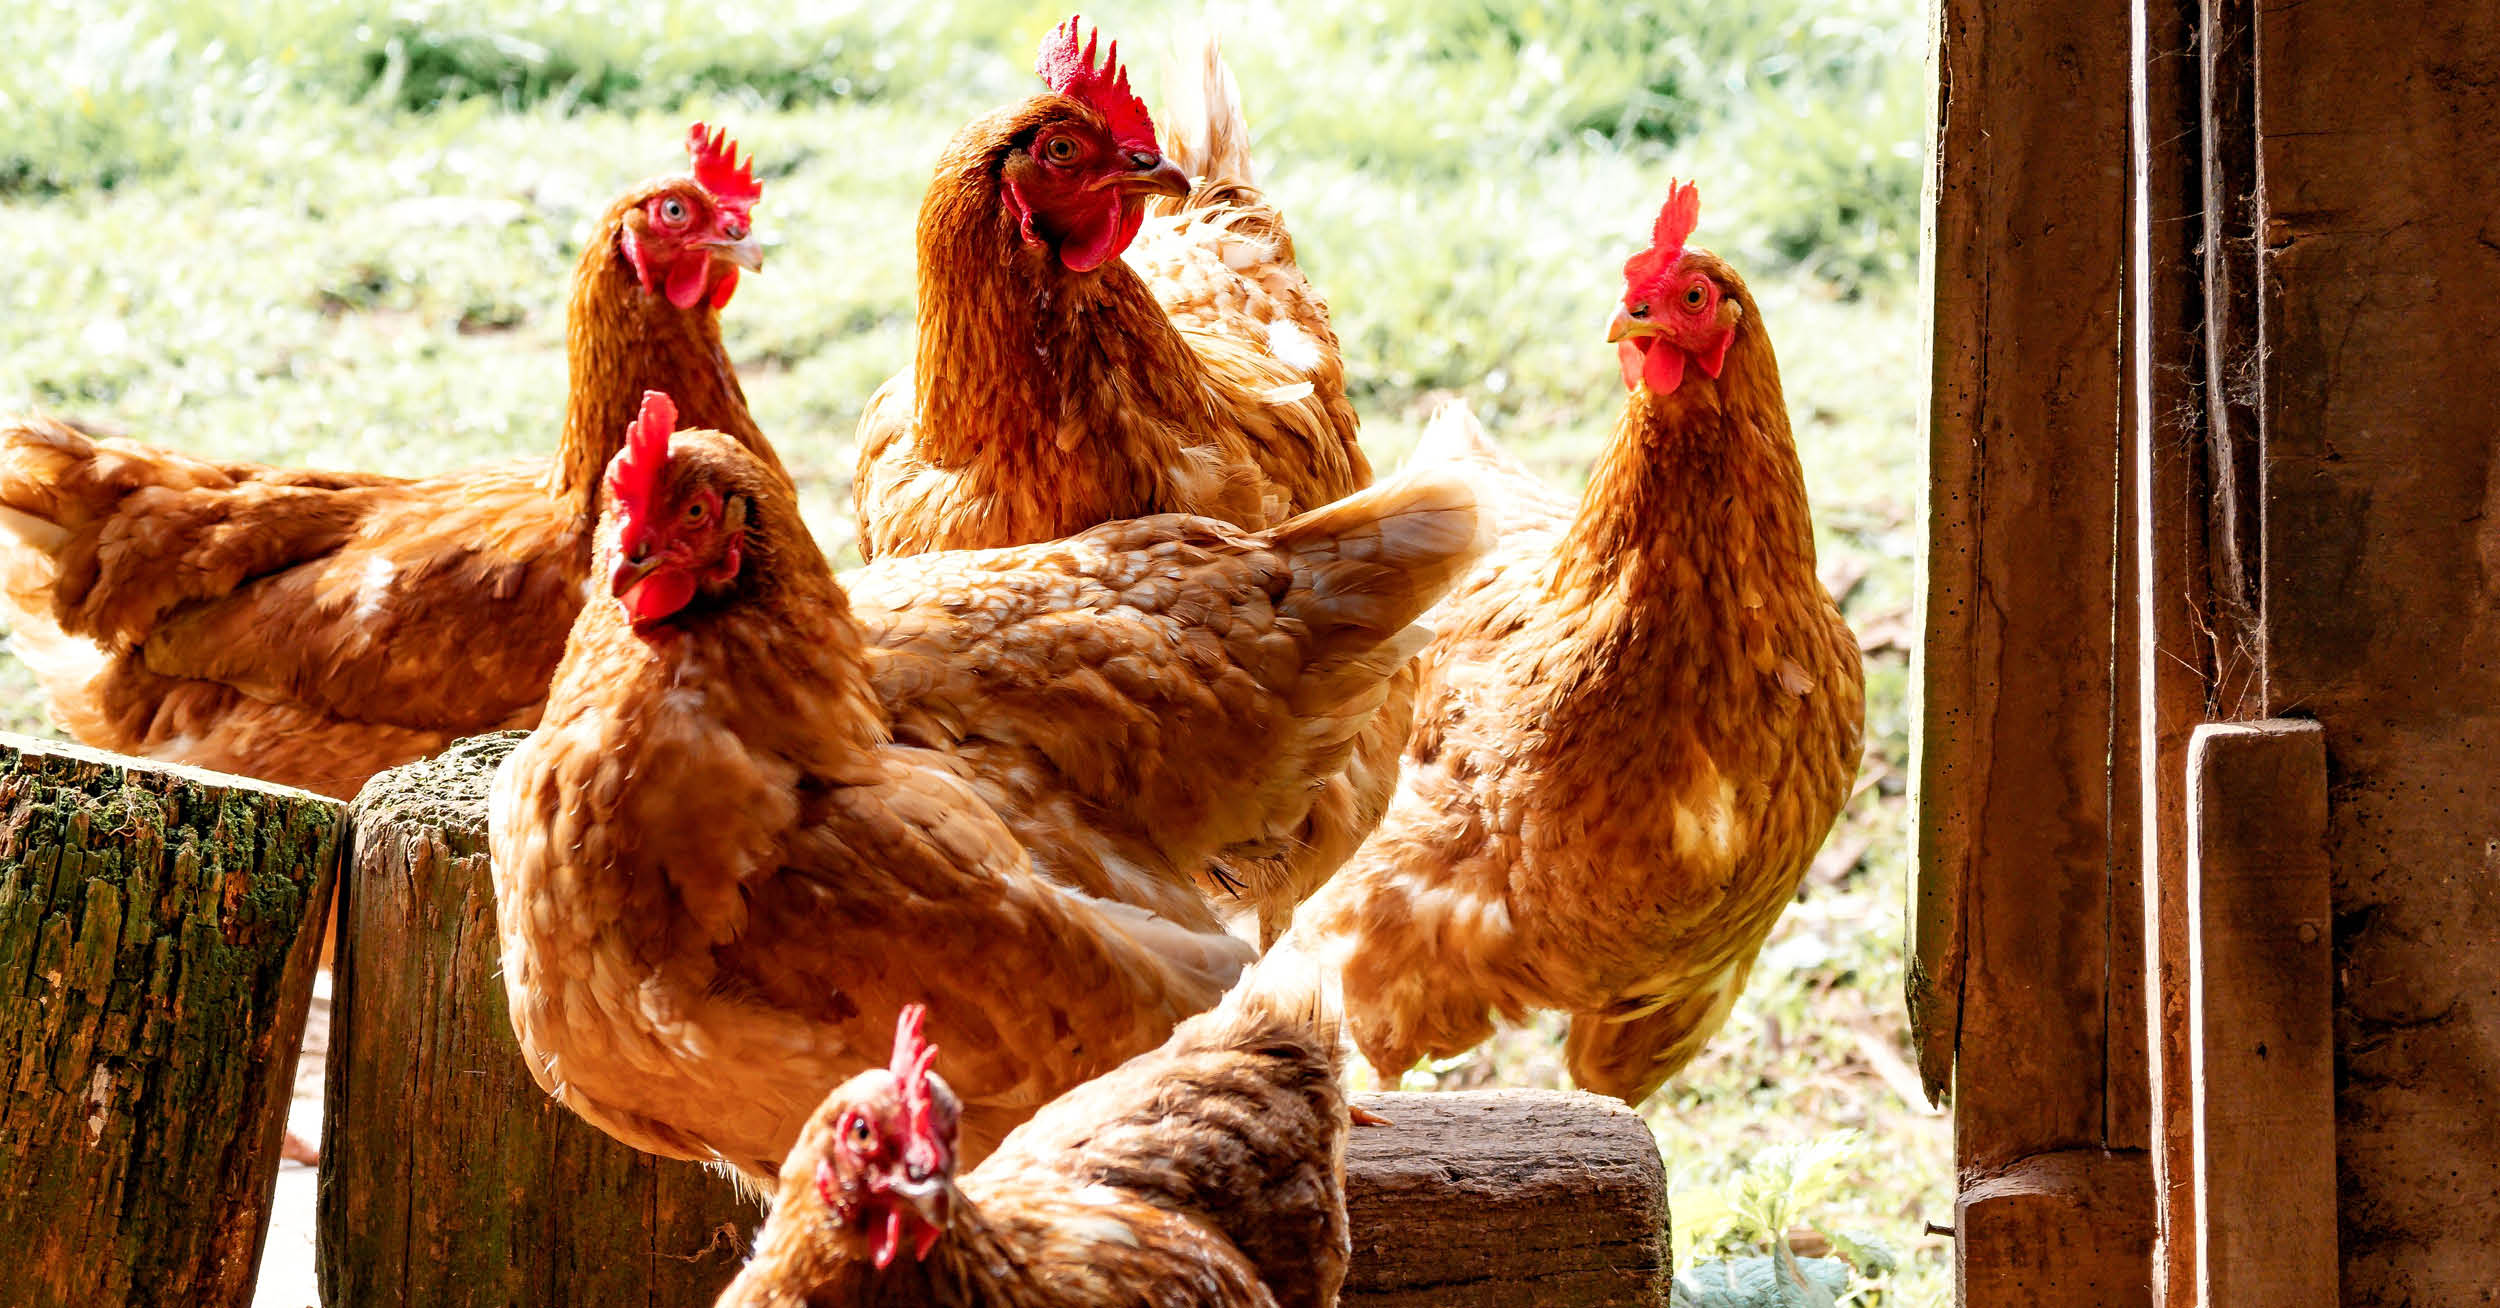 Tour D Coup chickens